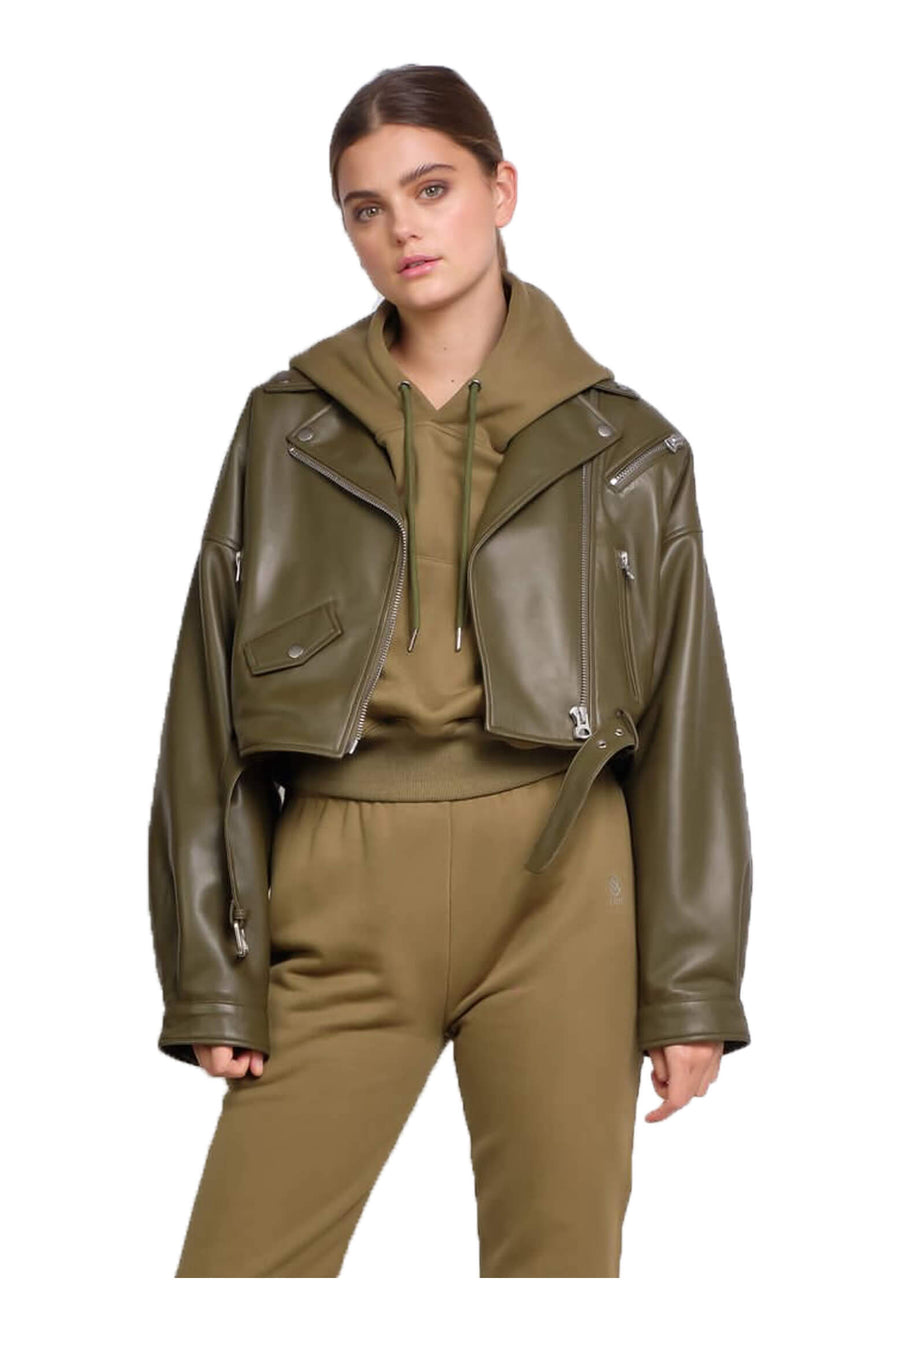 Ducie London Tanya Leather Jacket in Olive from The New Trend